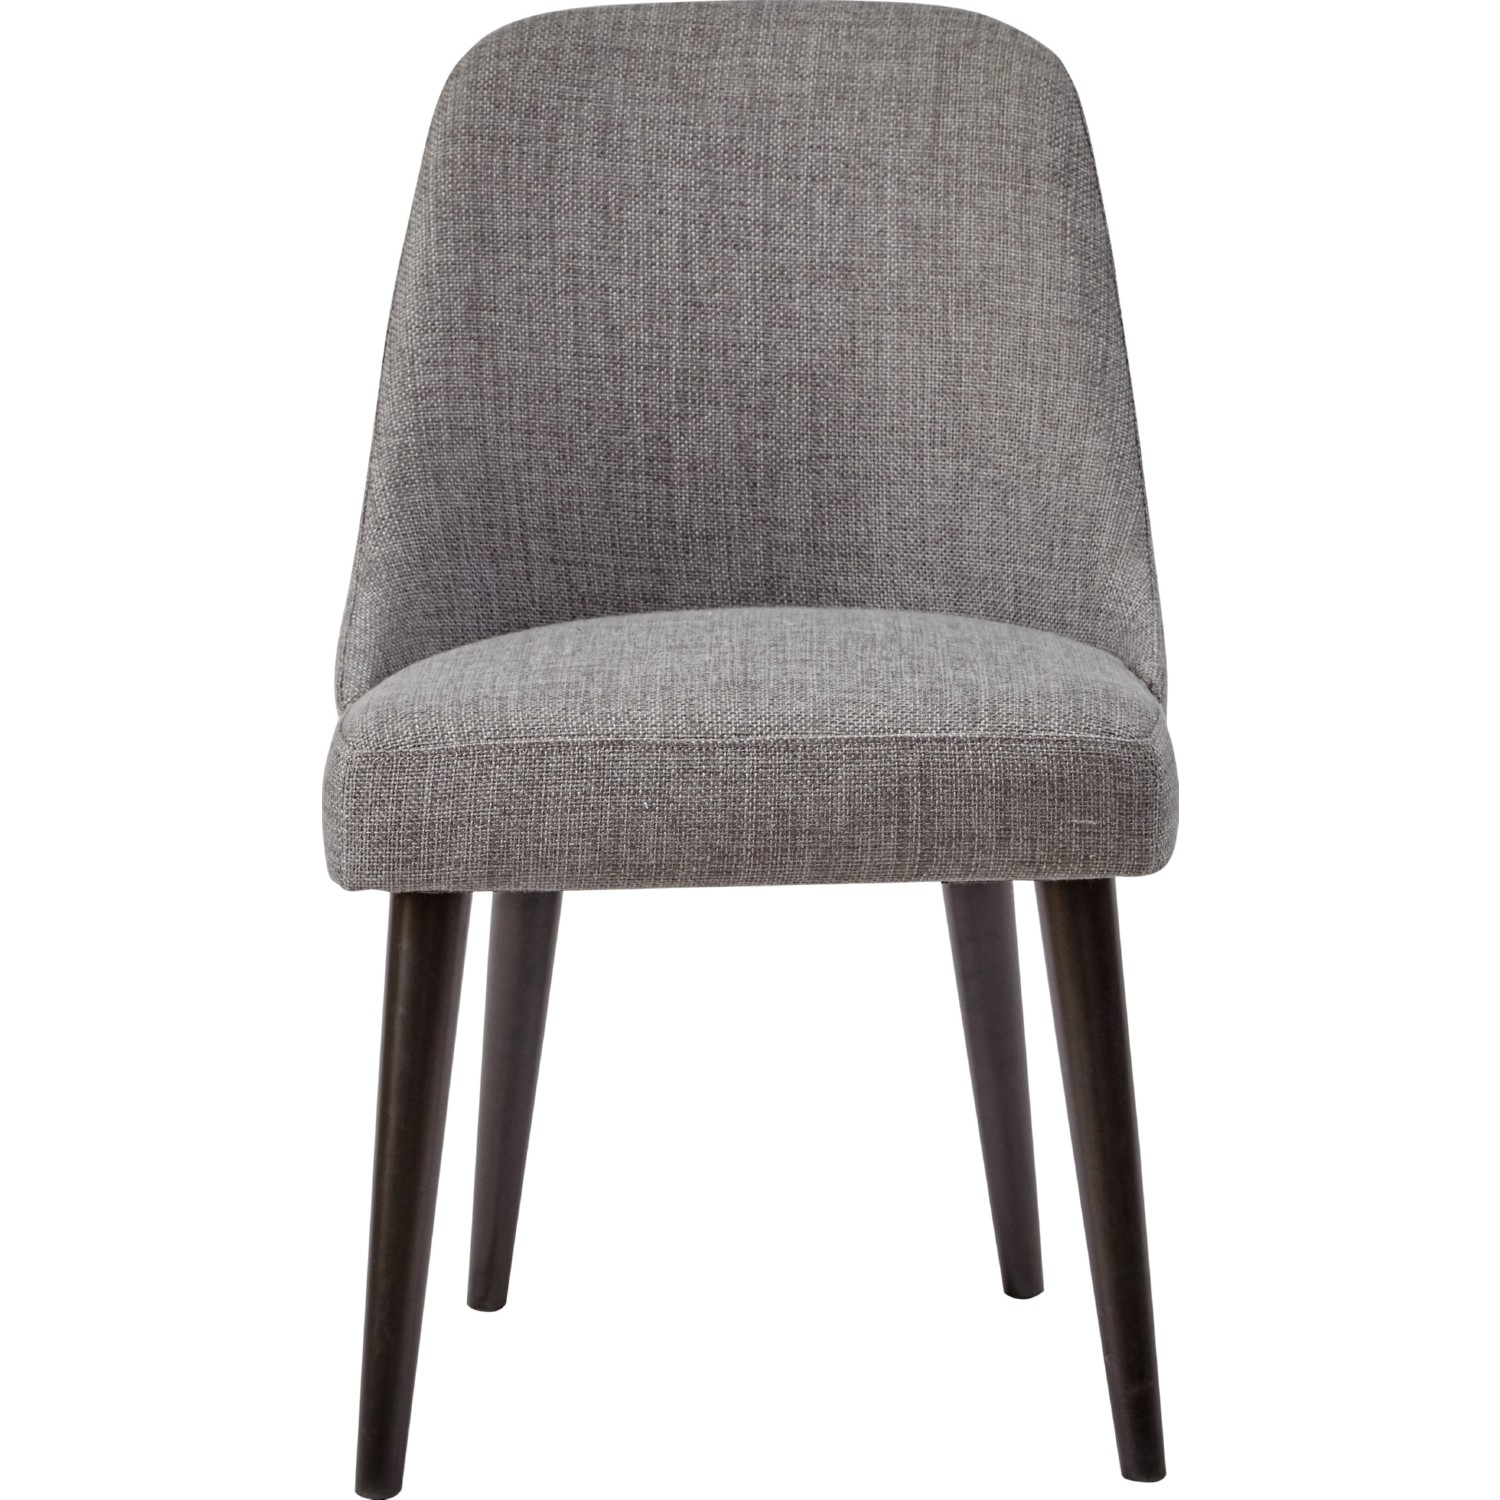 Jofran American Retrospective Dining Chair In Grey Fabric On Birch Legs